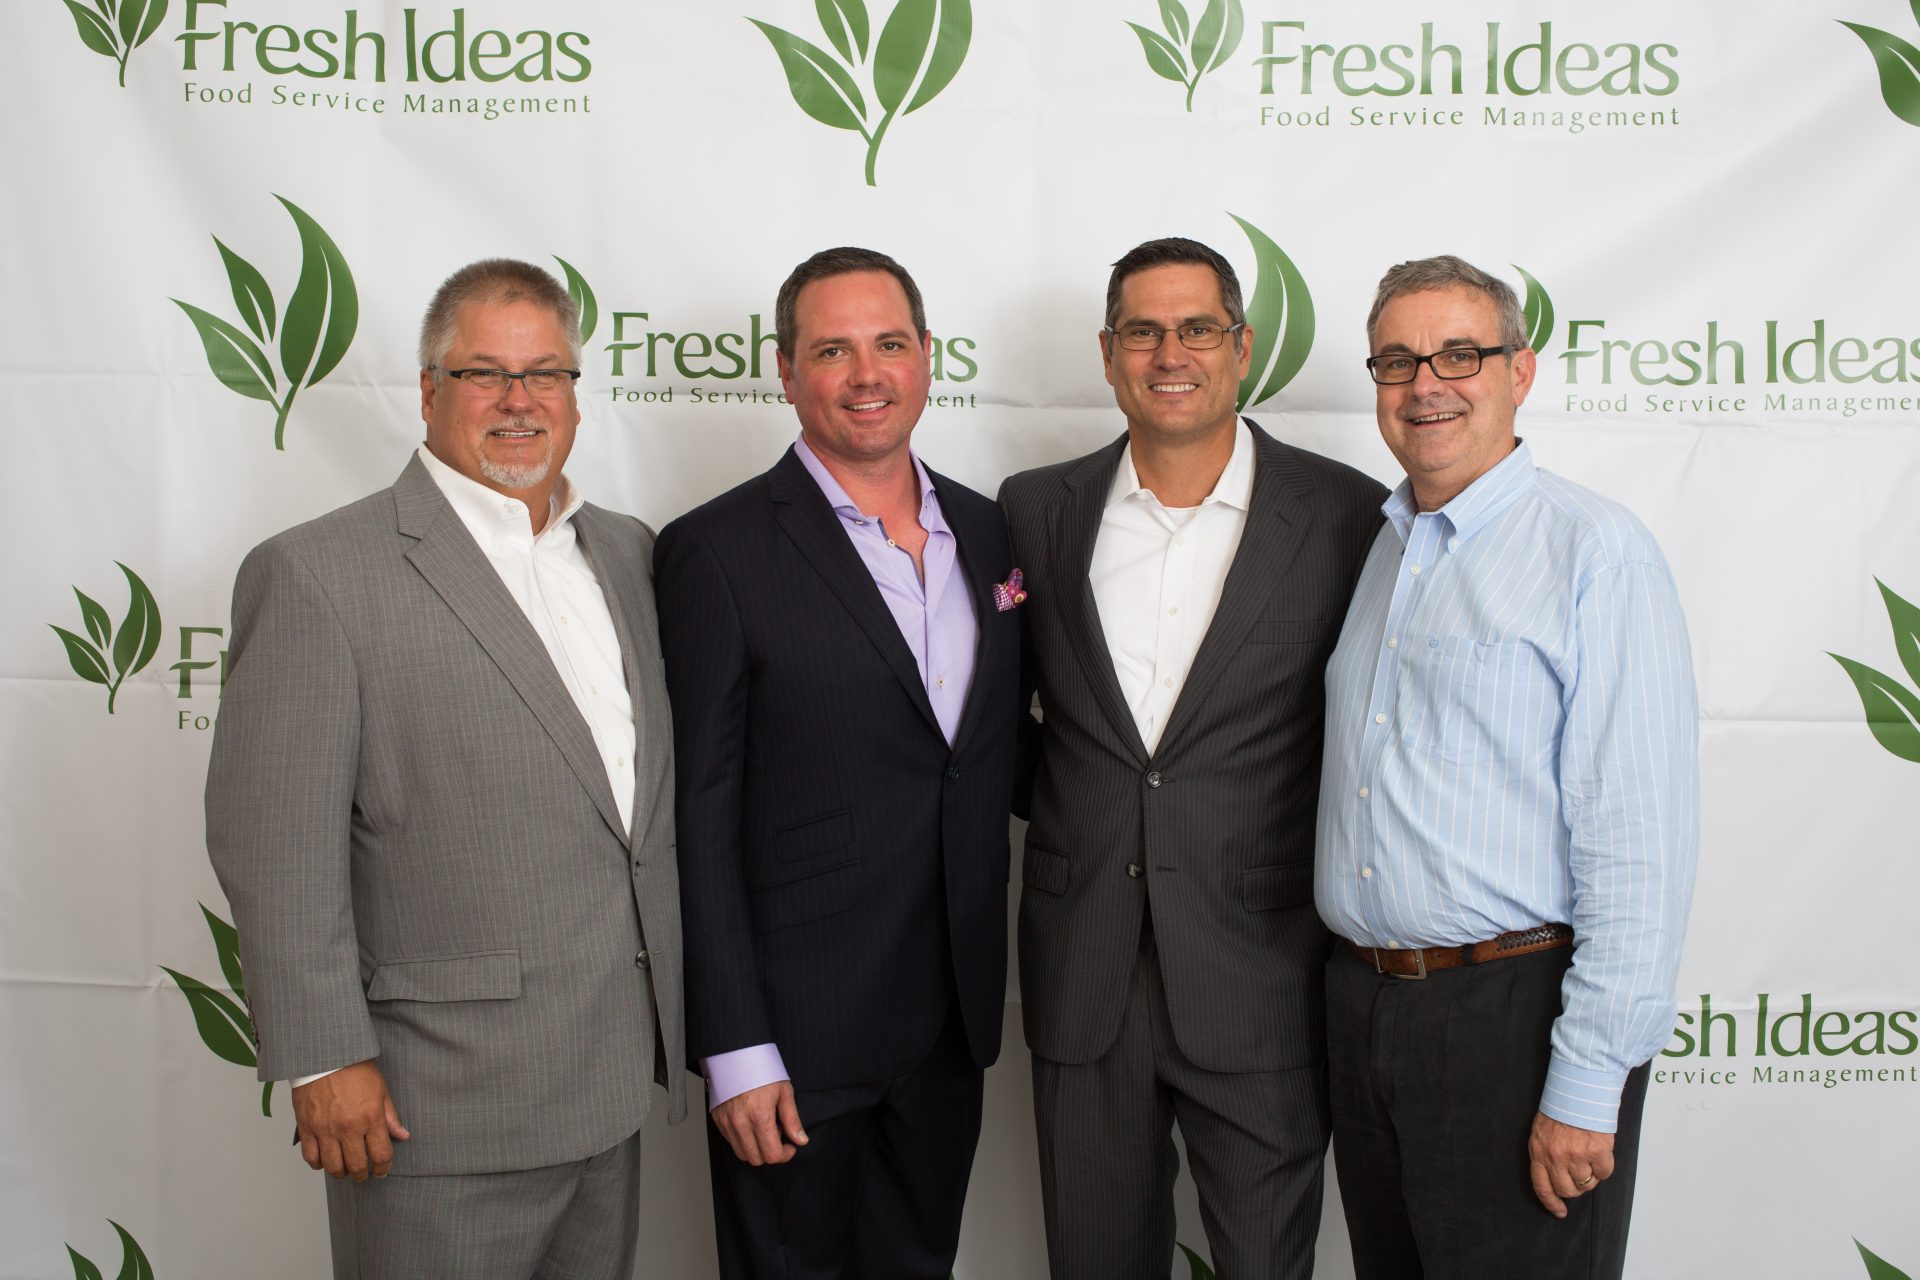 Staff members stand in front of a backdrop at an event sponsored by Fresh Ideas Food Service Managment